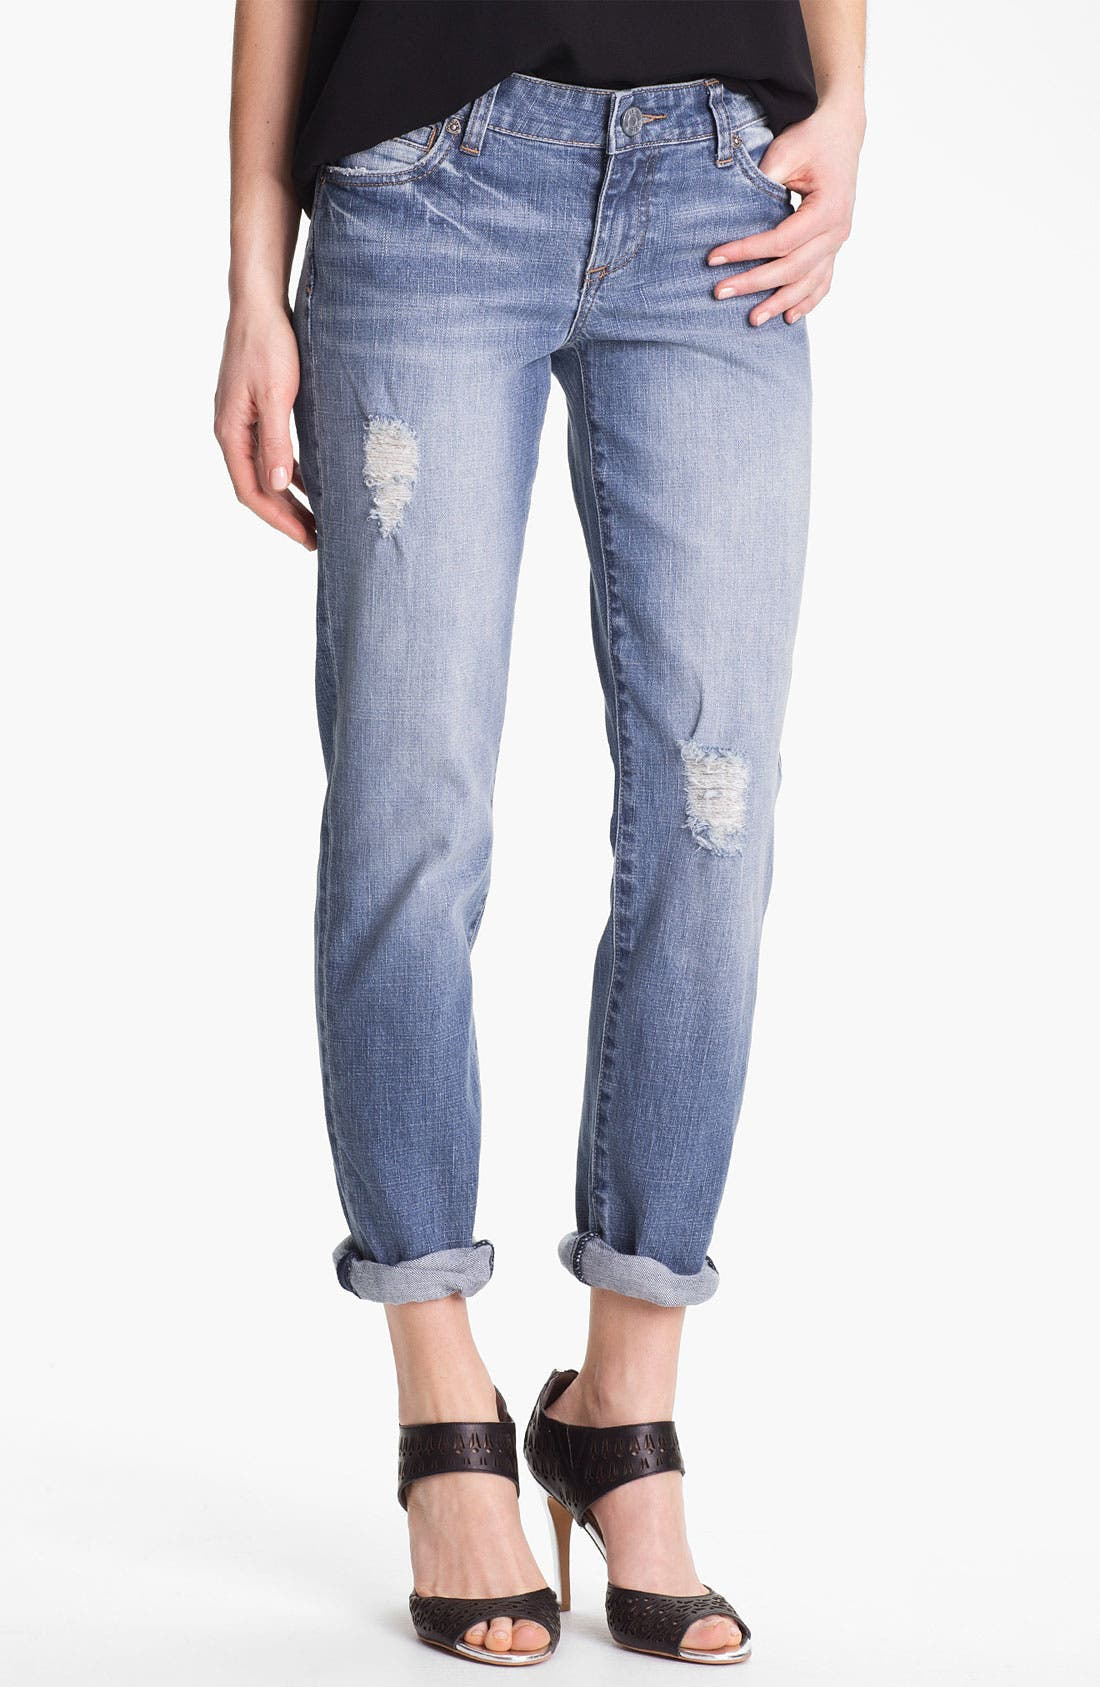 Alternate Image 1 Selected - KUT from the Kloth 'Catherine' Distressed Slim Boyfriend Jeans (Discover)